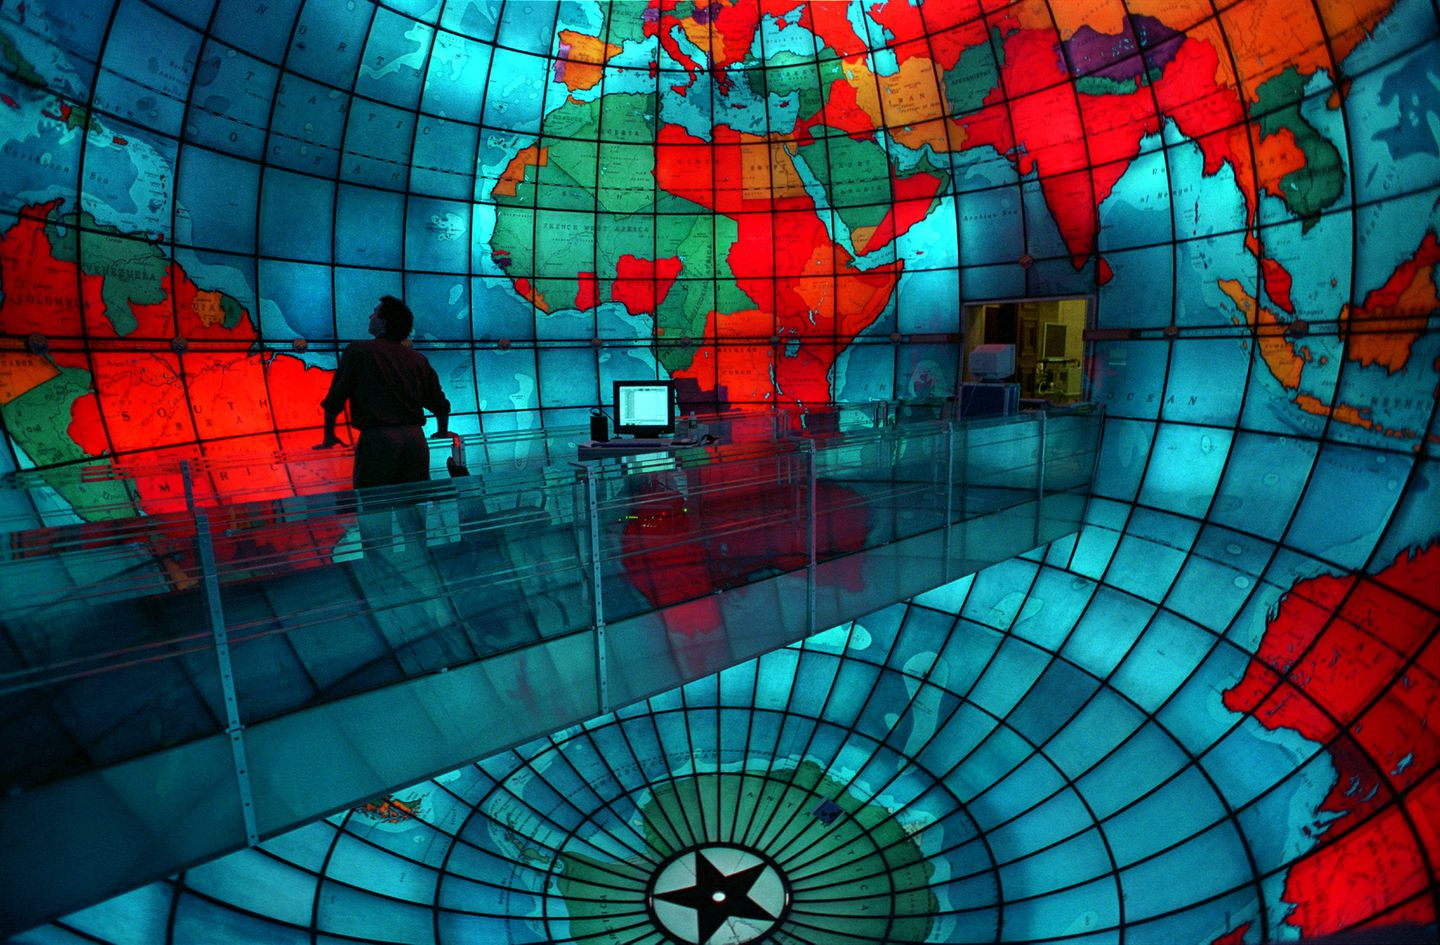 Mary Baker Eddy Library featuring the Mapparium, which is a thirty foot globe of brightly colored glass which represents a view of the world and the nations from the inside out.